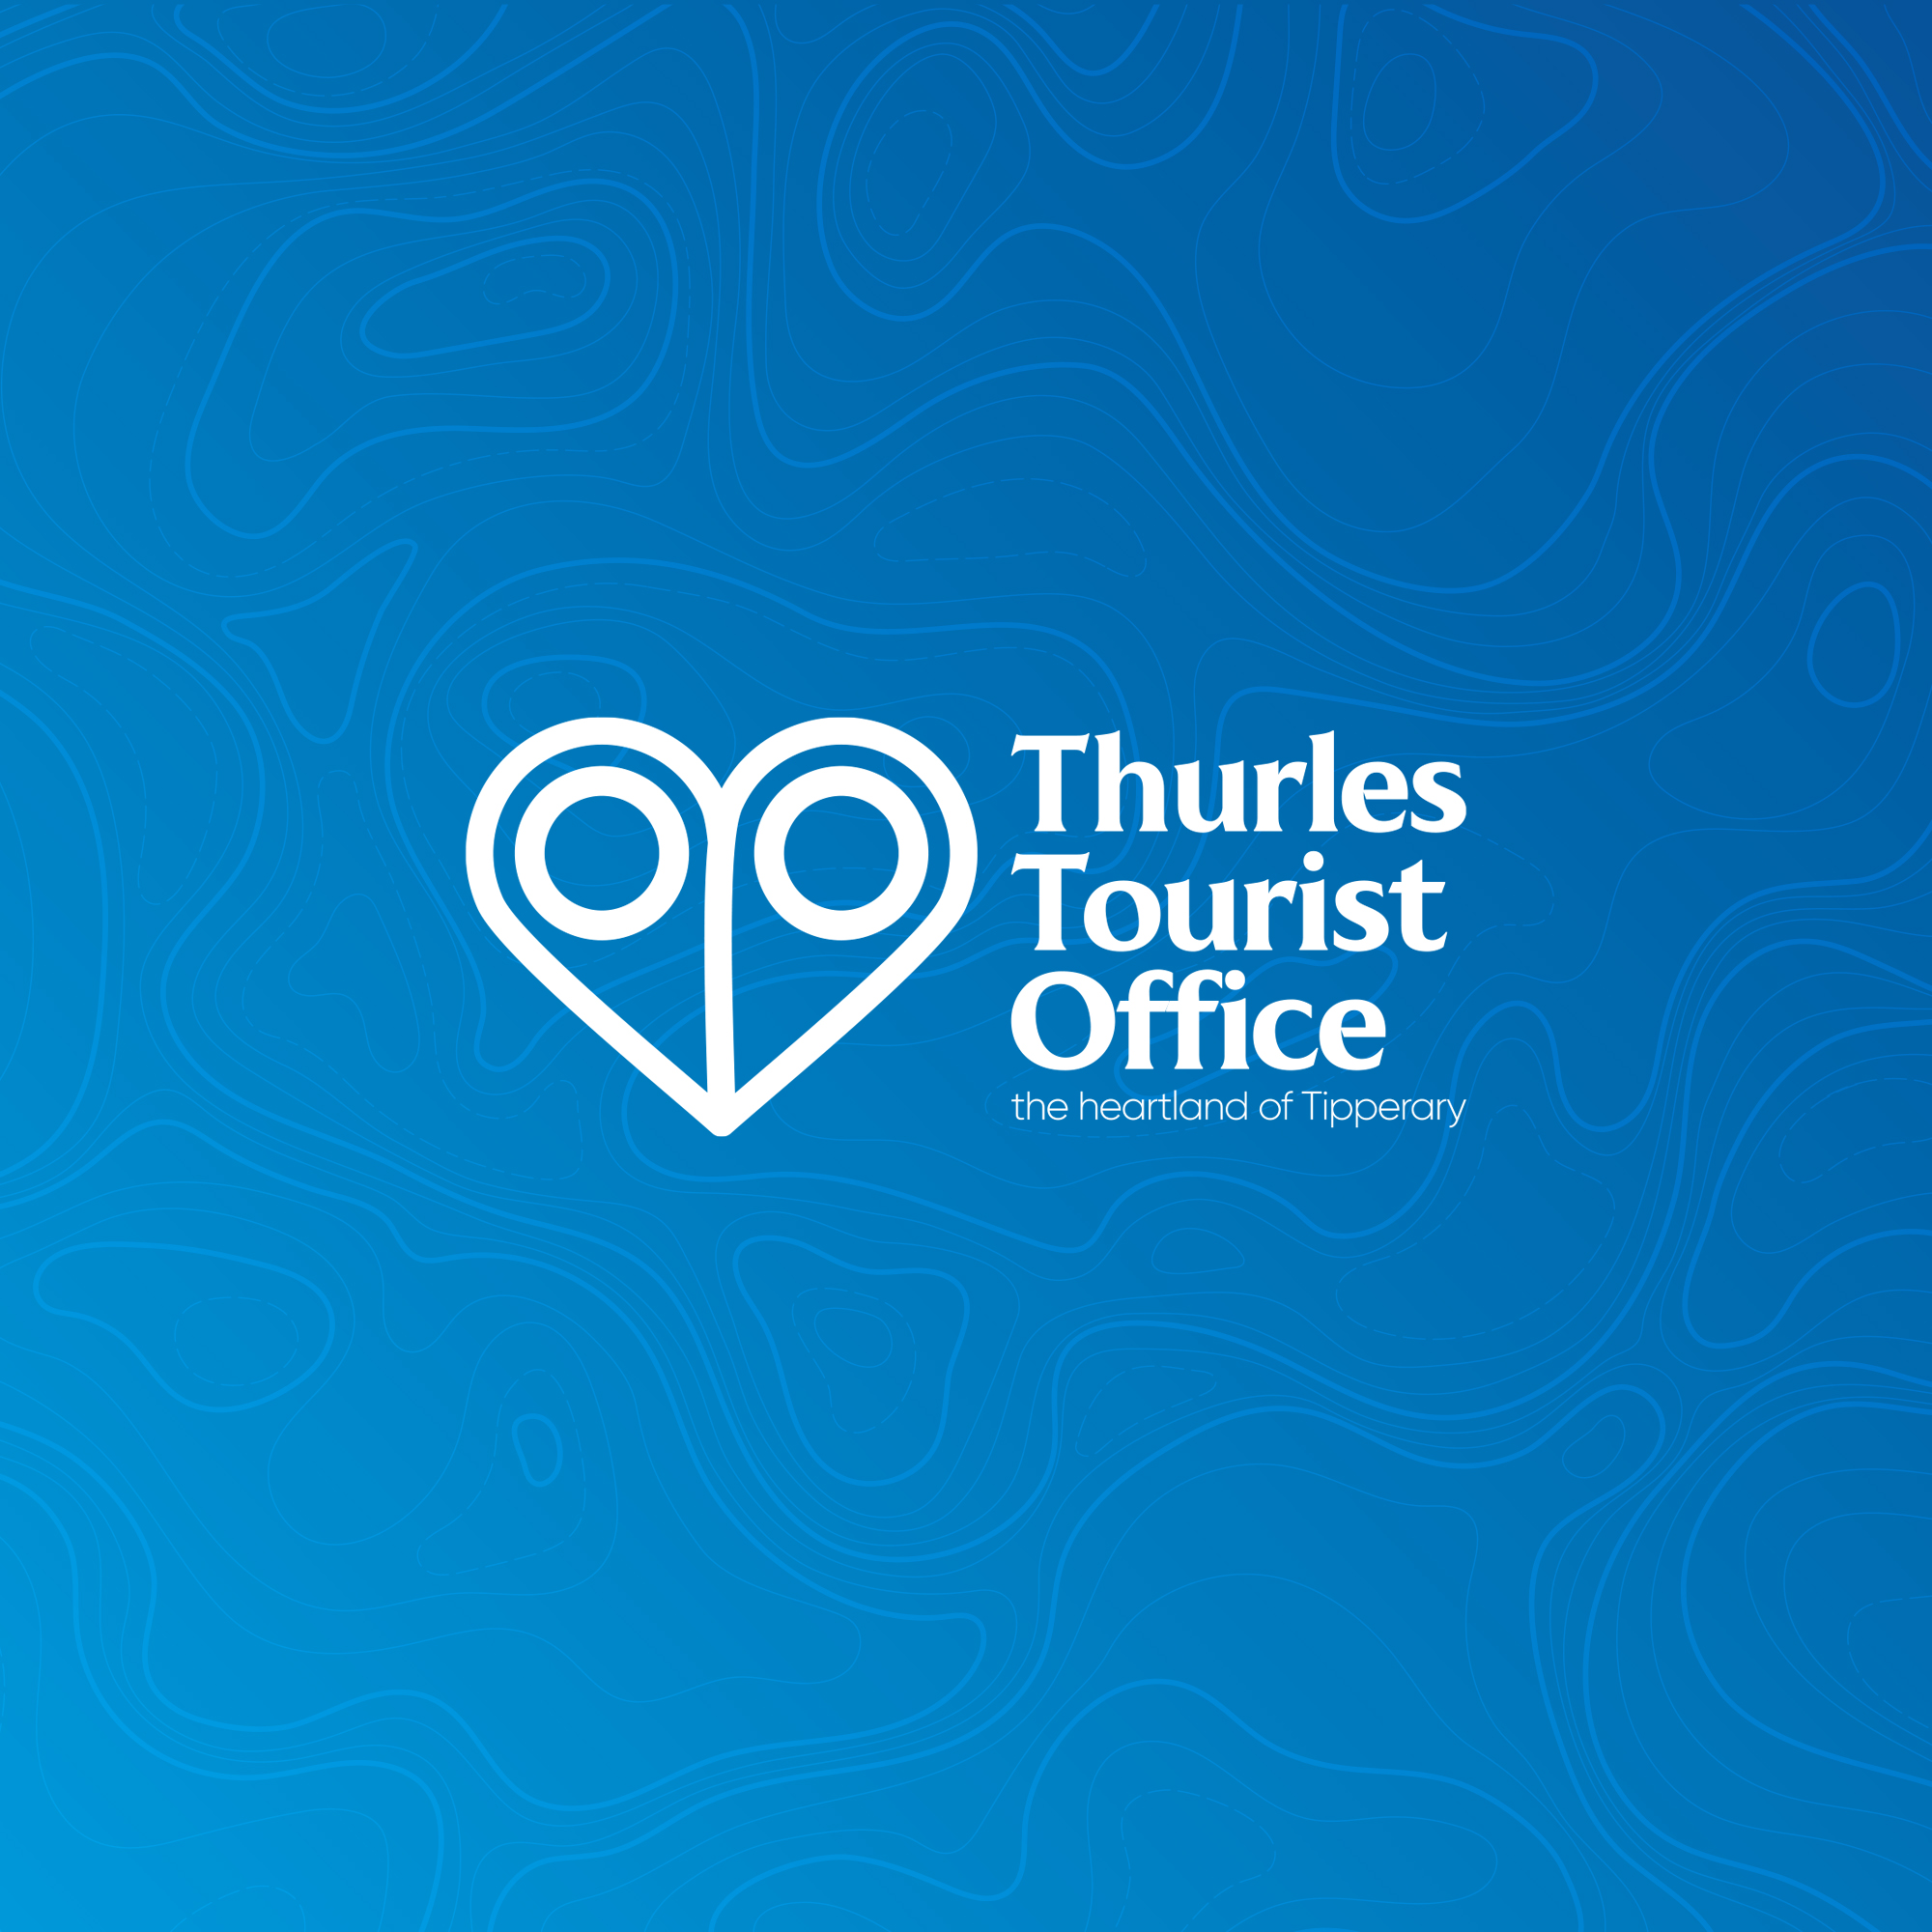 Cover image: Thurles Tourist Office